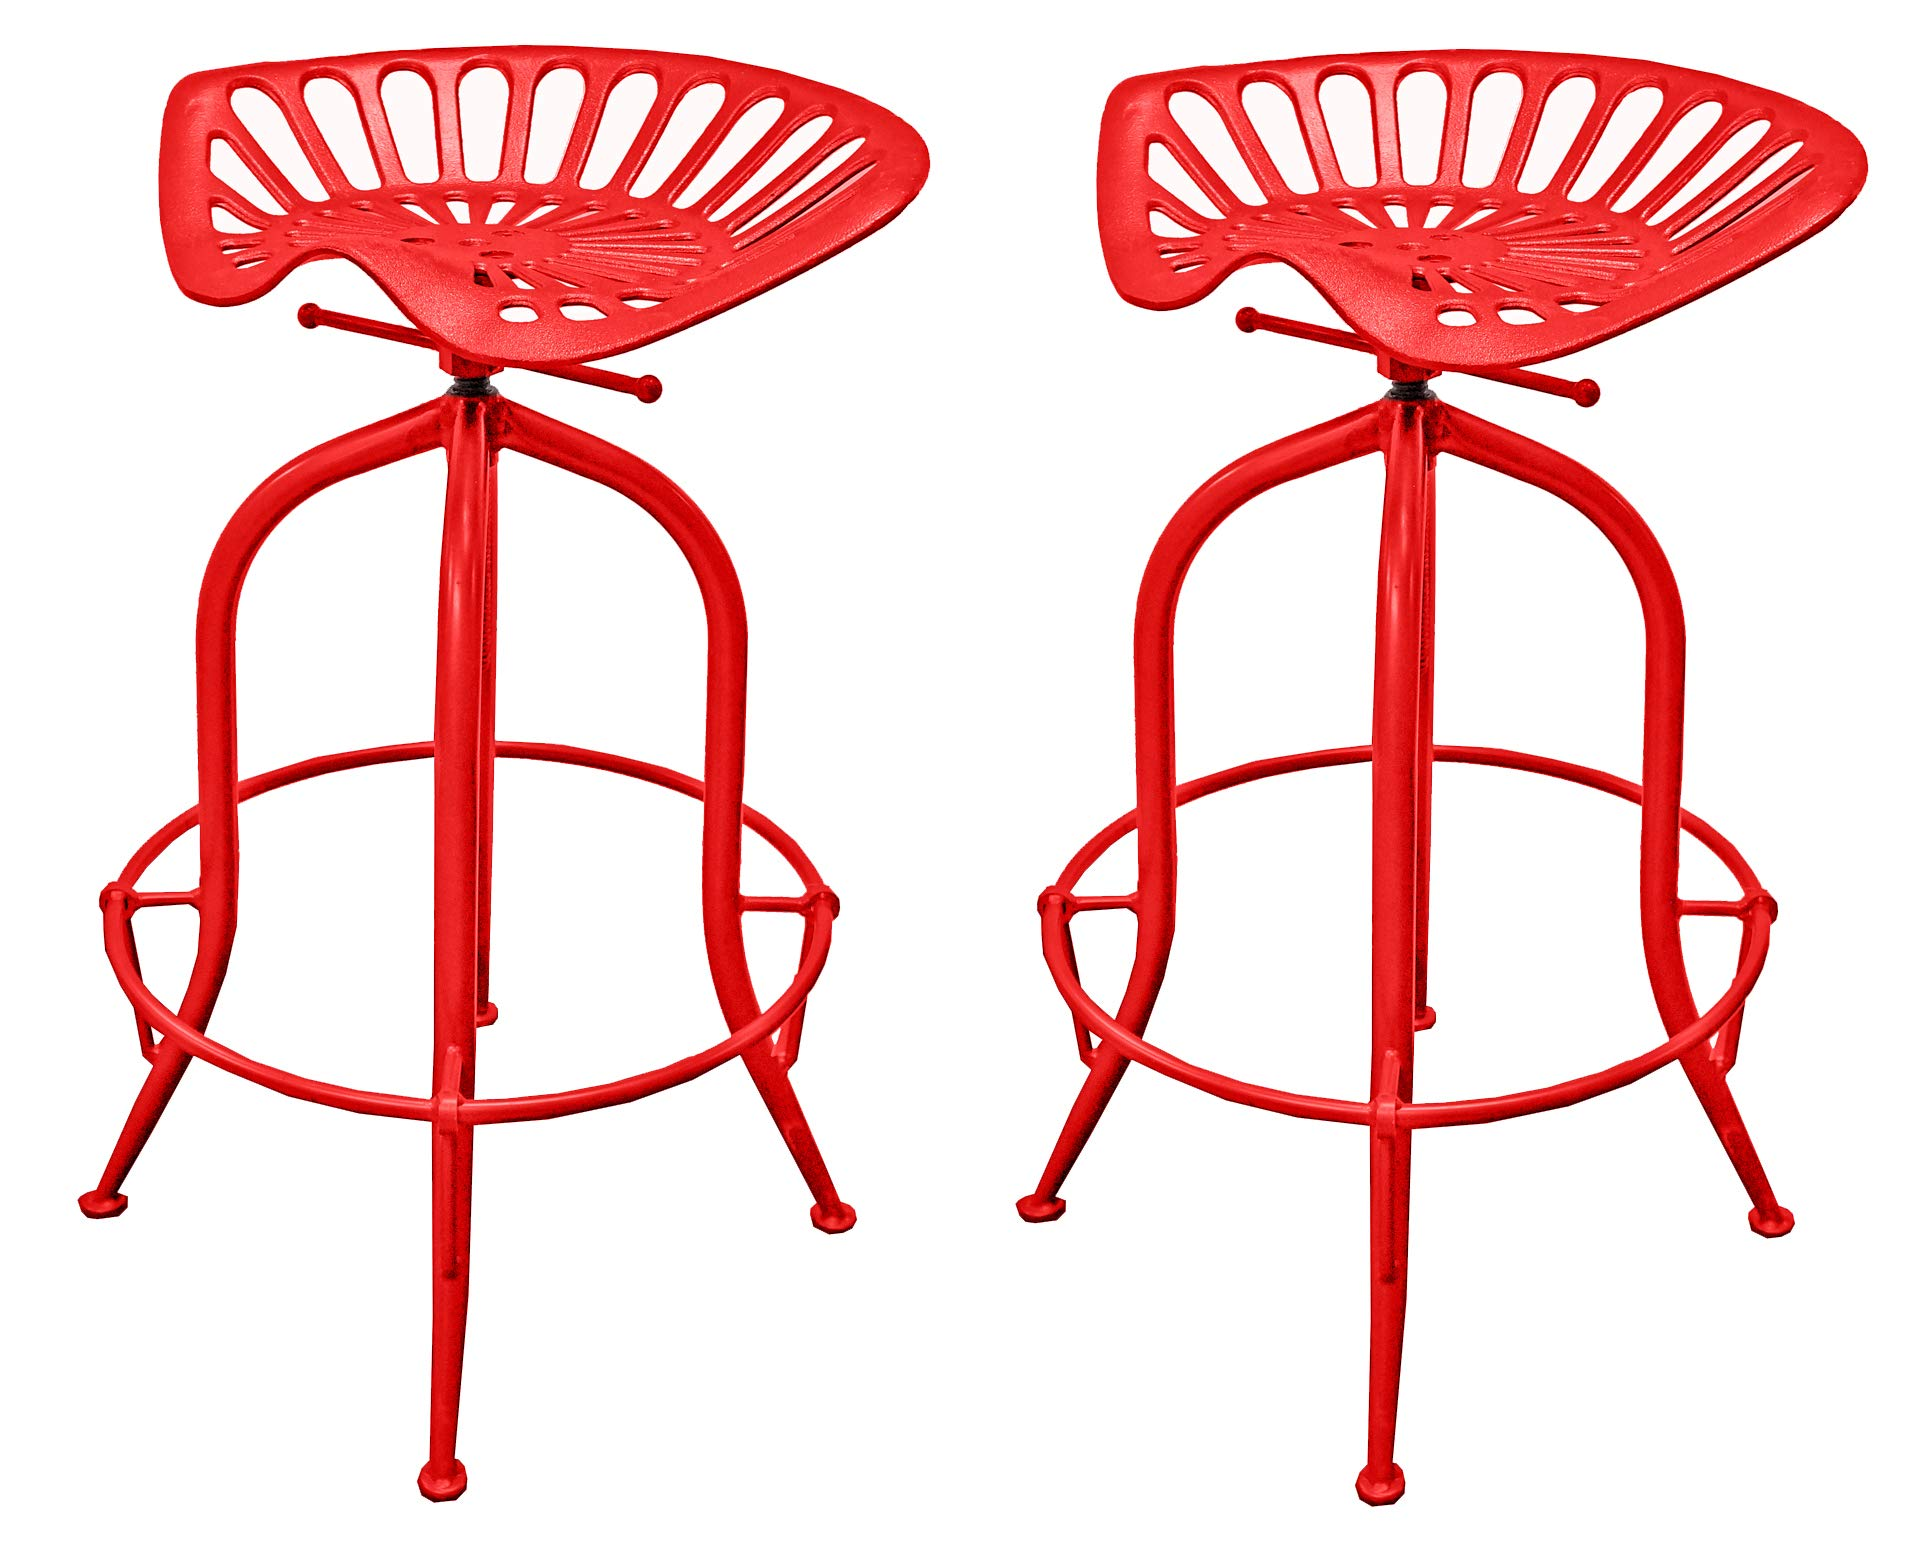 NACH Vintage Style Adjustable Tractor Seat Bar Stool with Circle Base Foot Rest , 19.5x14.5x26-33'', Red,  (Set of 2) by NACH